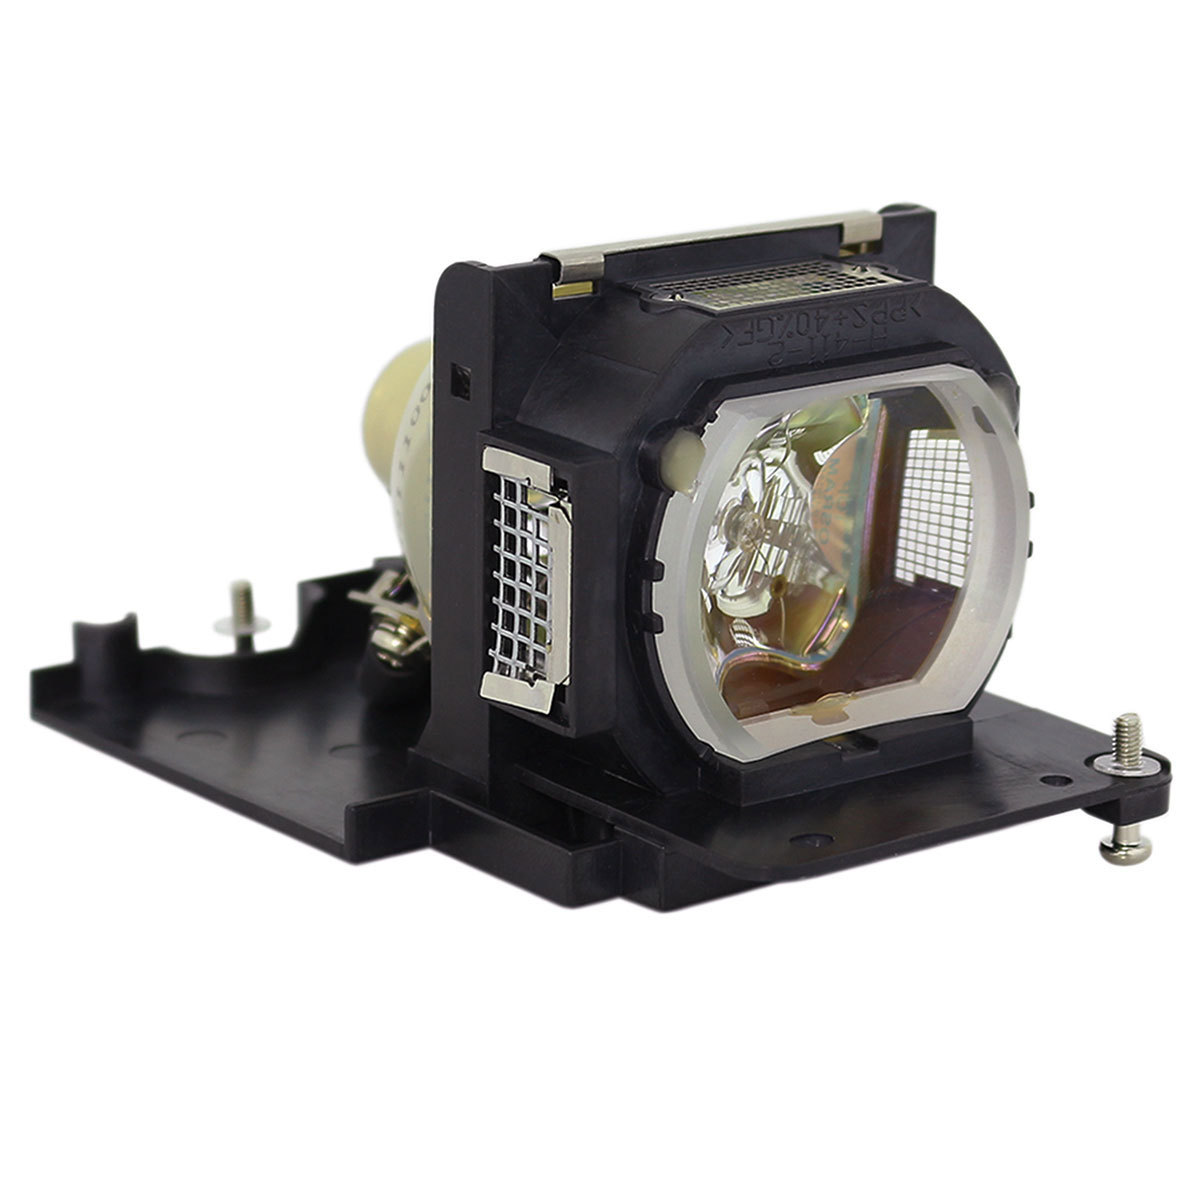 Primary image for Geha 60-270594 Osram Projector Lamp Module